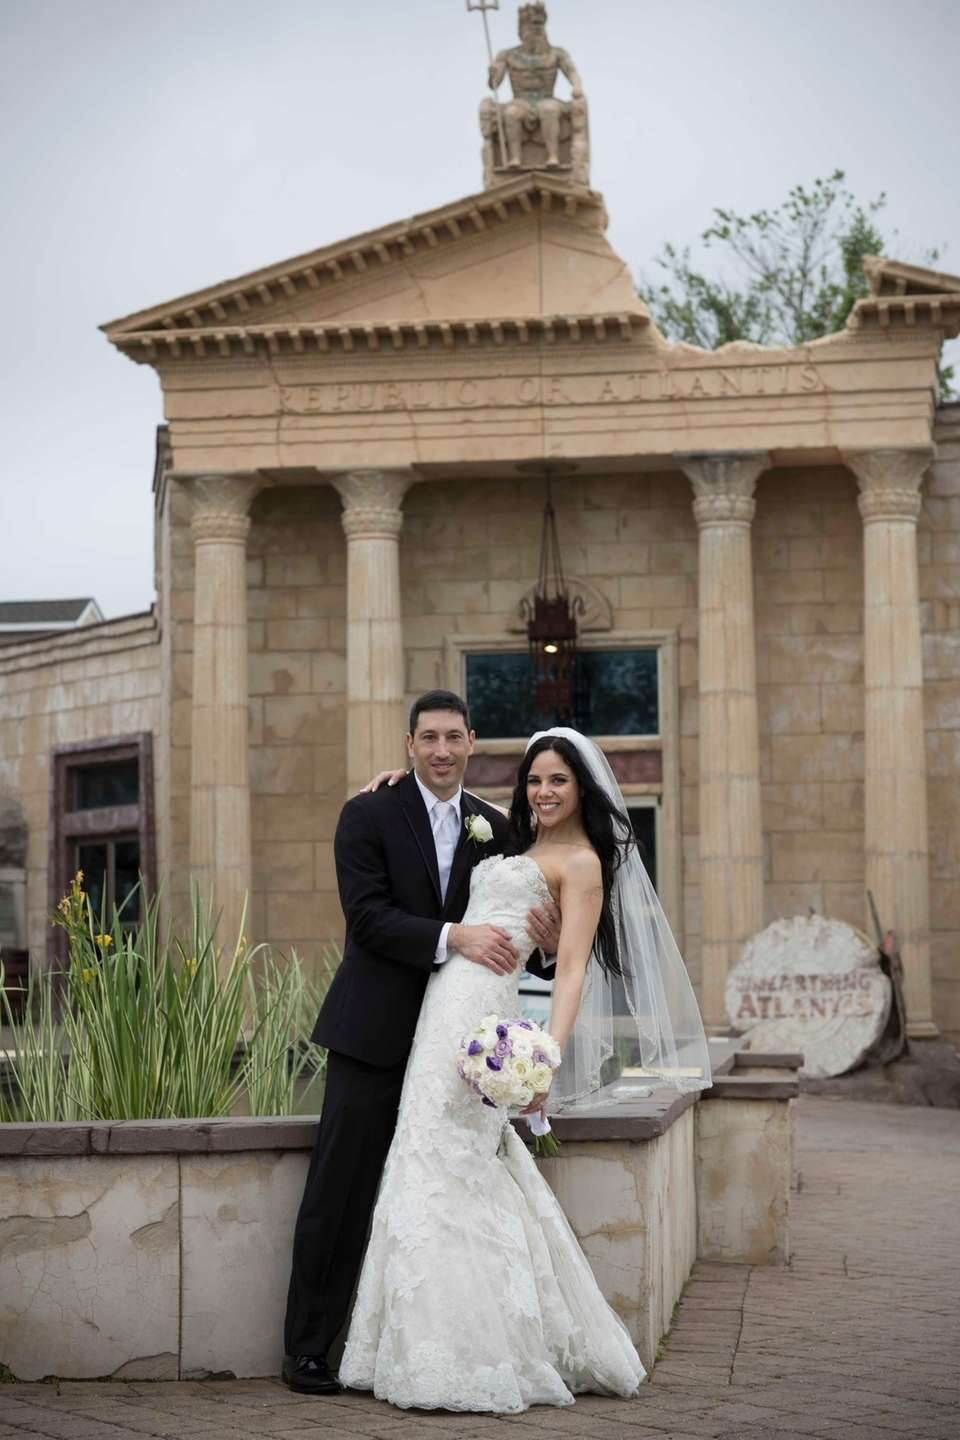 Michael and Aliza Batih tied the knot at